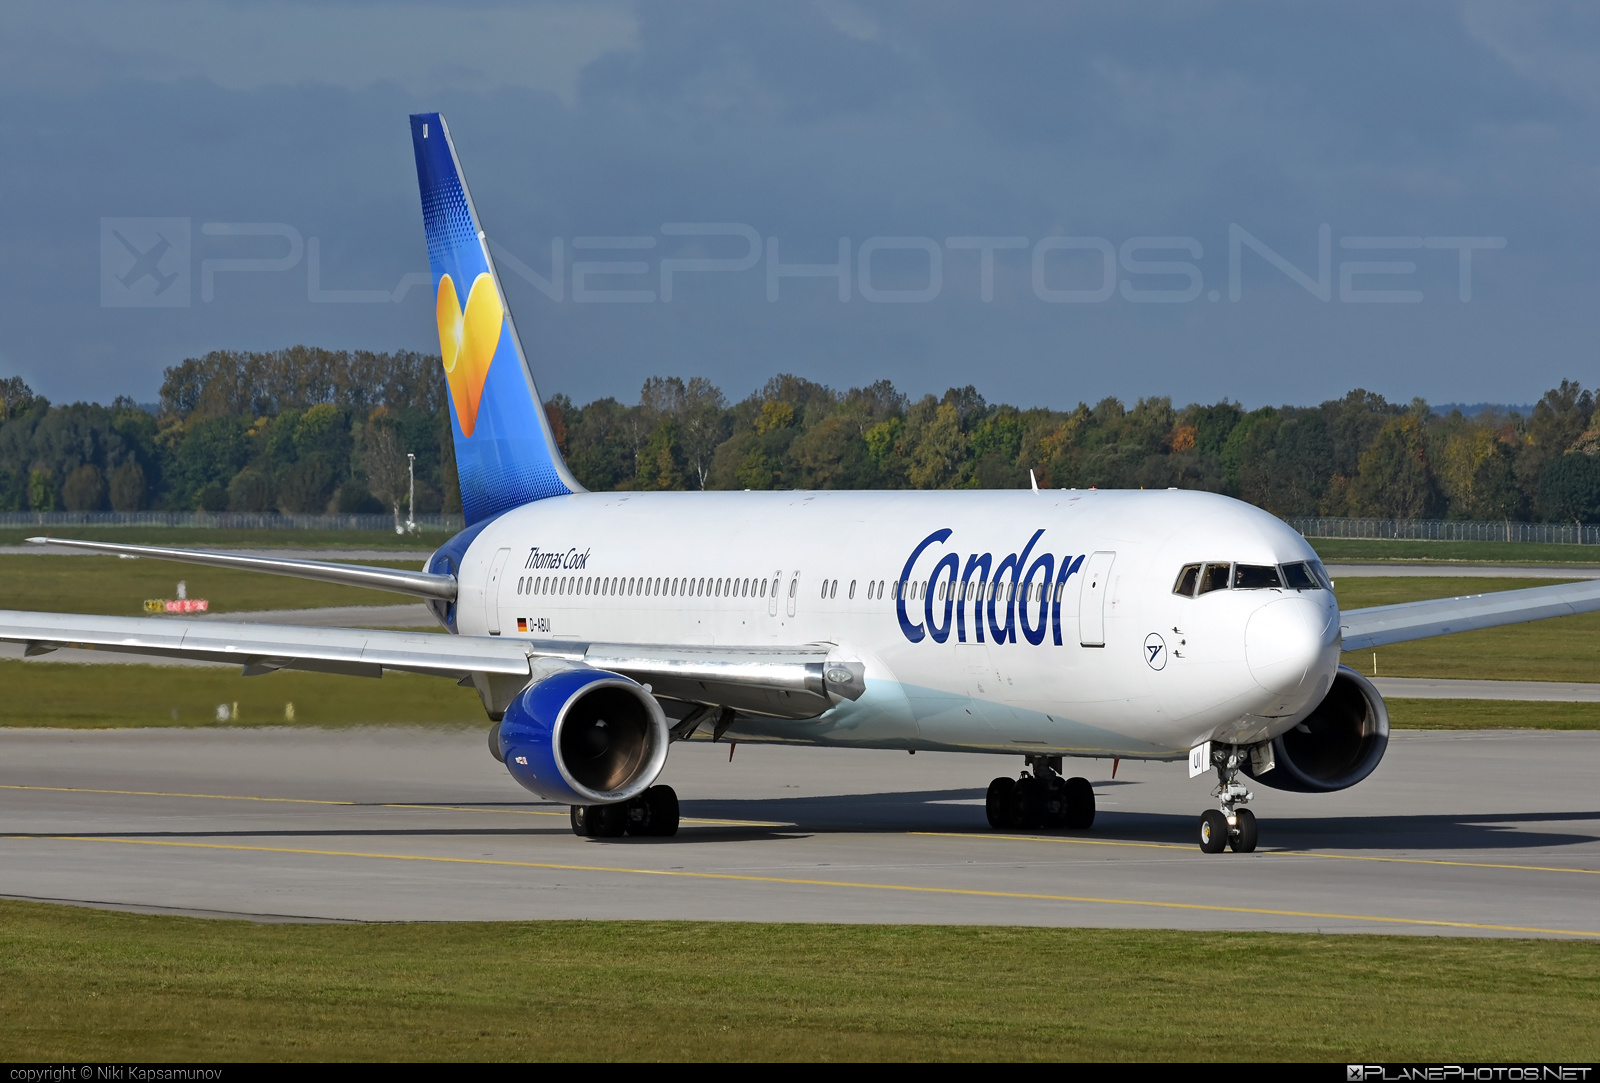 Boeing 767-300ER - D-ABUI operated by Condor #b767 #b767er #boeing #boeing767